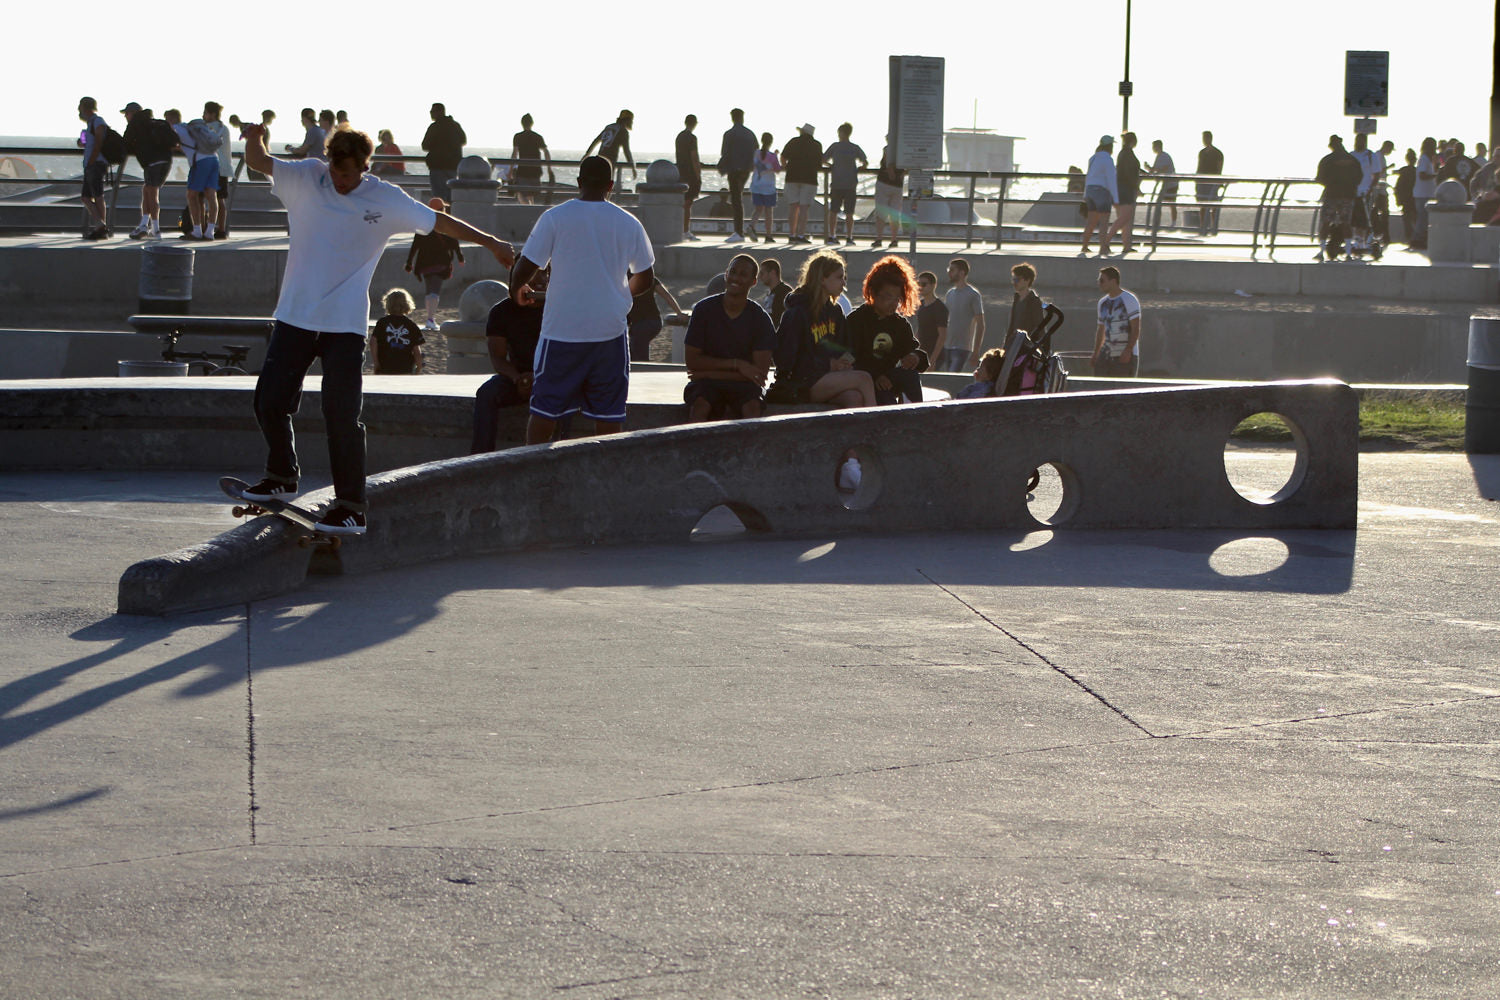 what-its-like-to-skate-venice-beach-skateboarding-longboarding-photo-5